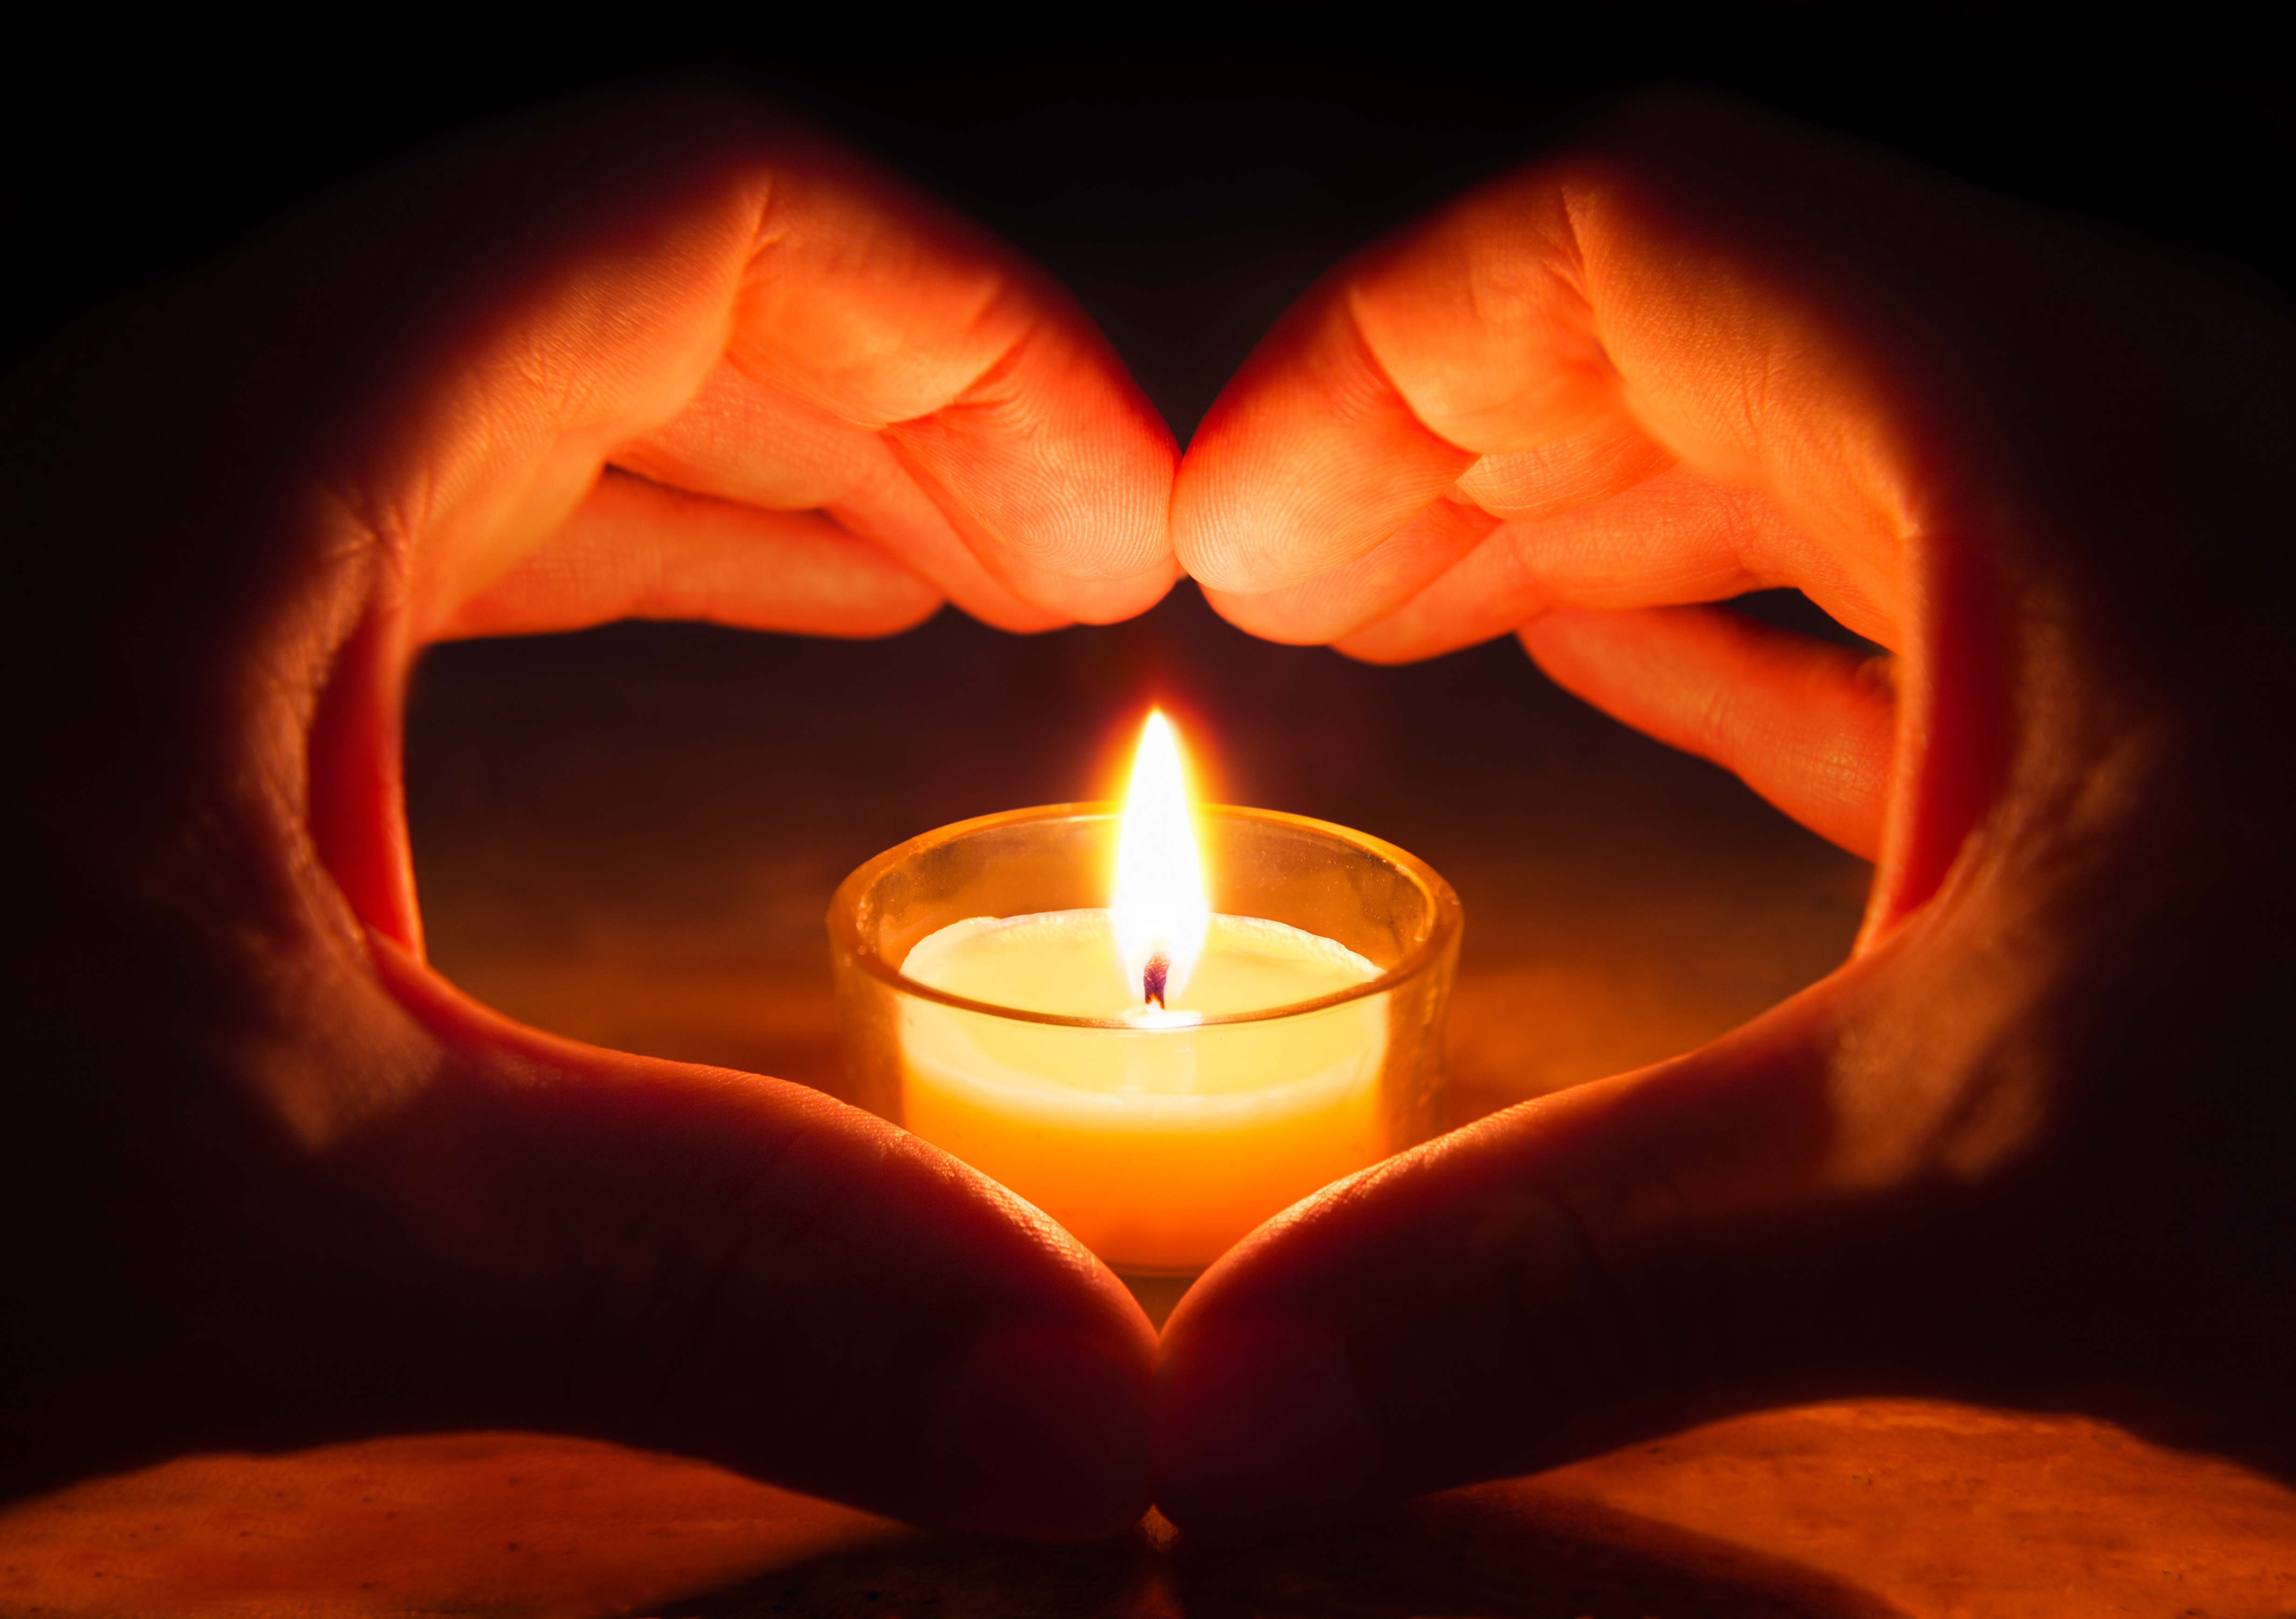 Hands forming heart around a candle